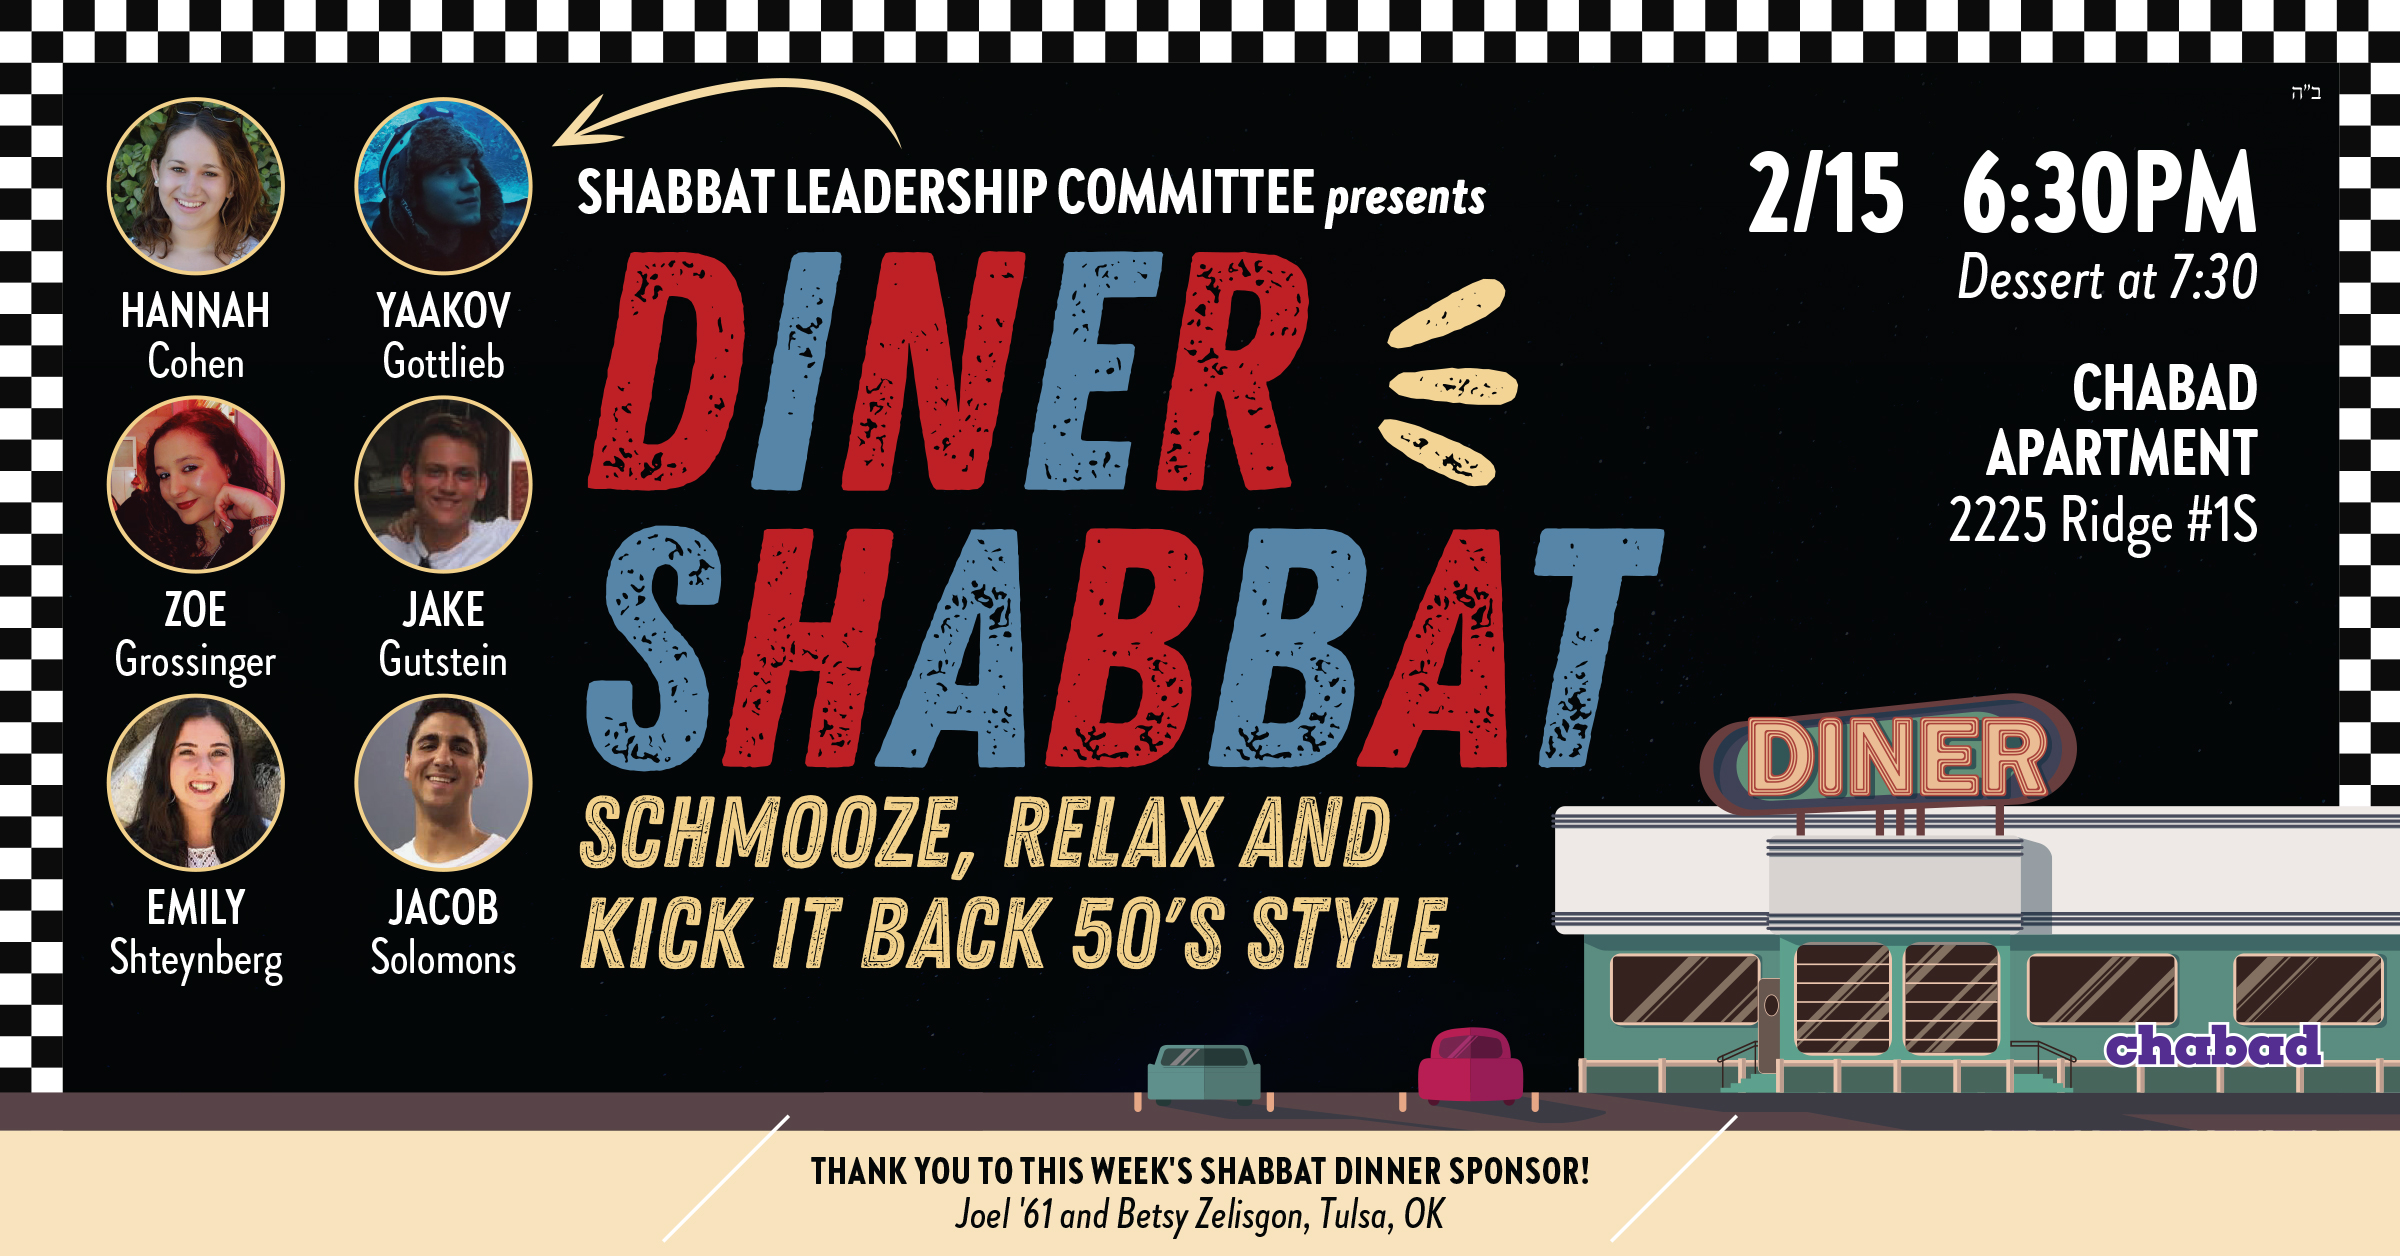 Diner-Shabbat---Image-for-FB.jpg